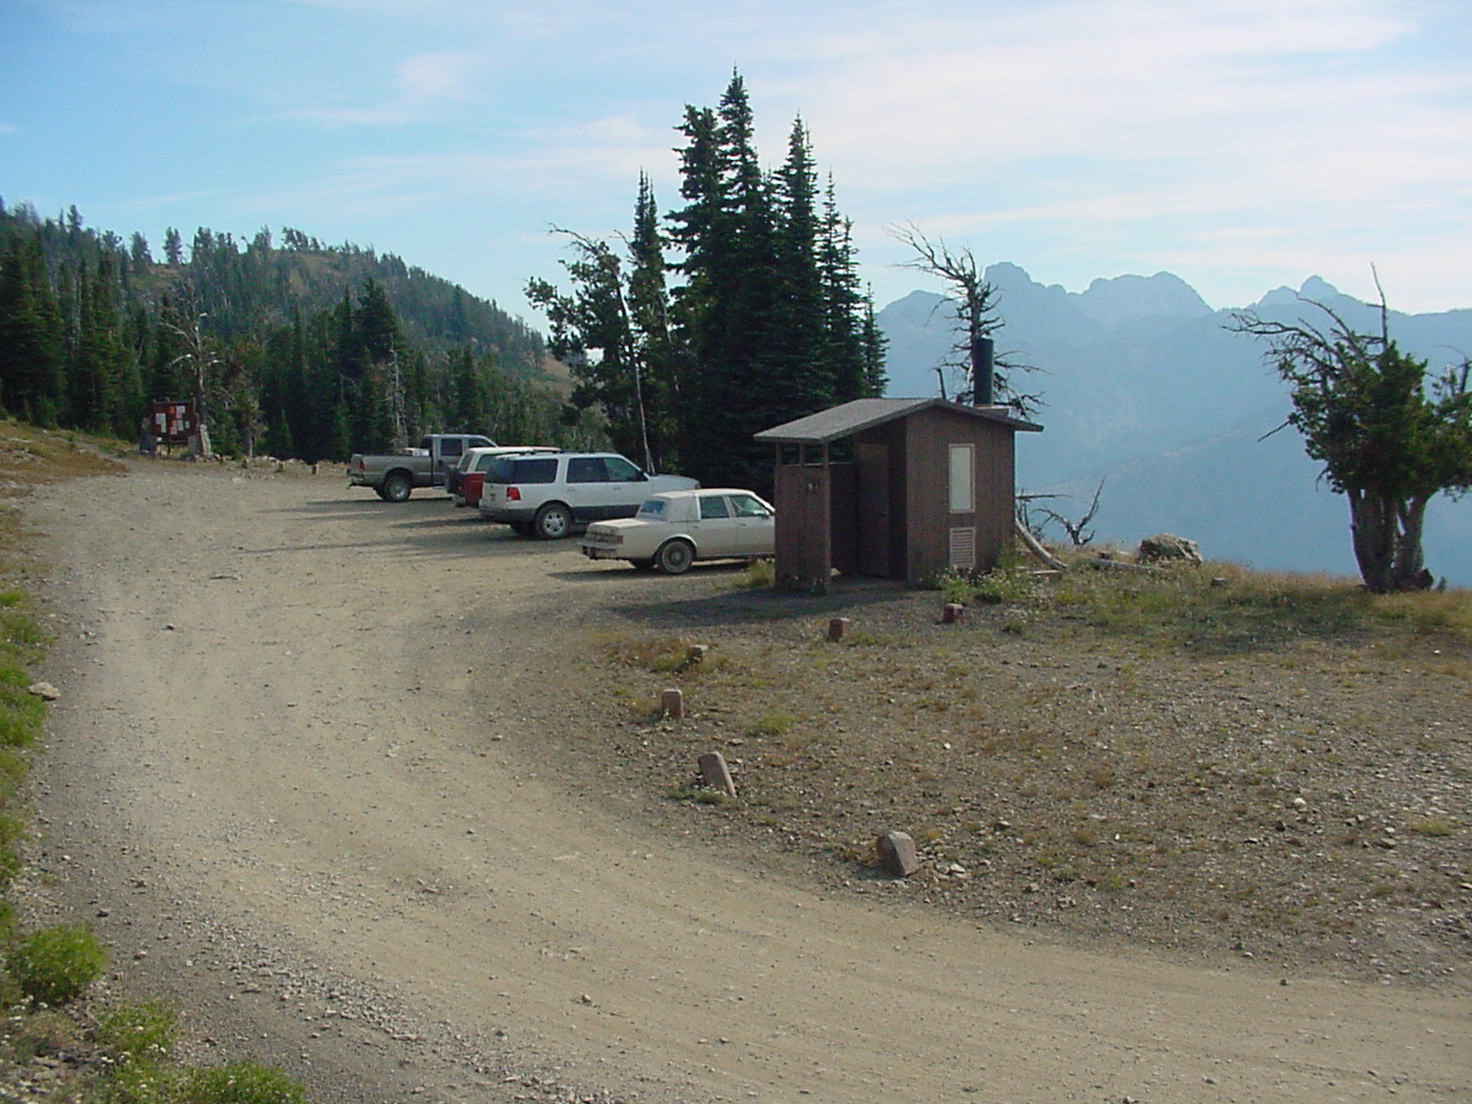 Cars and trucks parked at a mountain trailhead